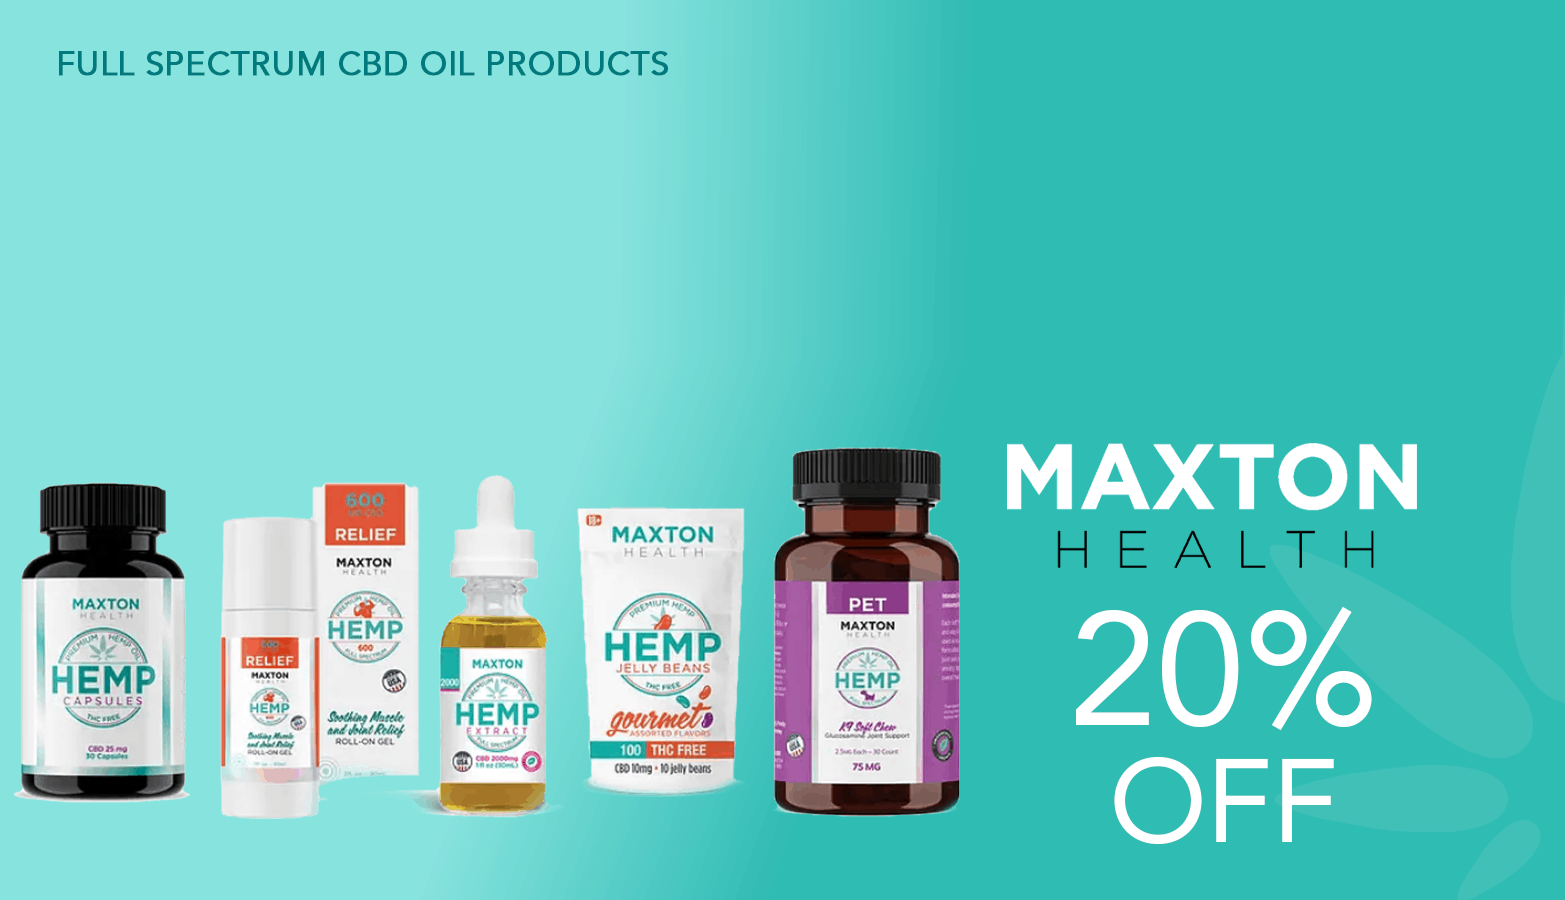 Maxton Health Coupon Code Offer Website